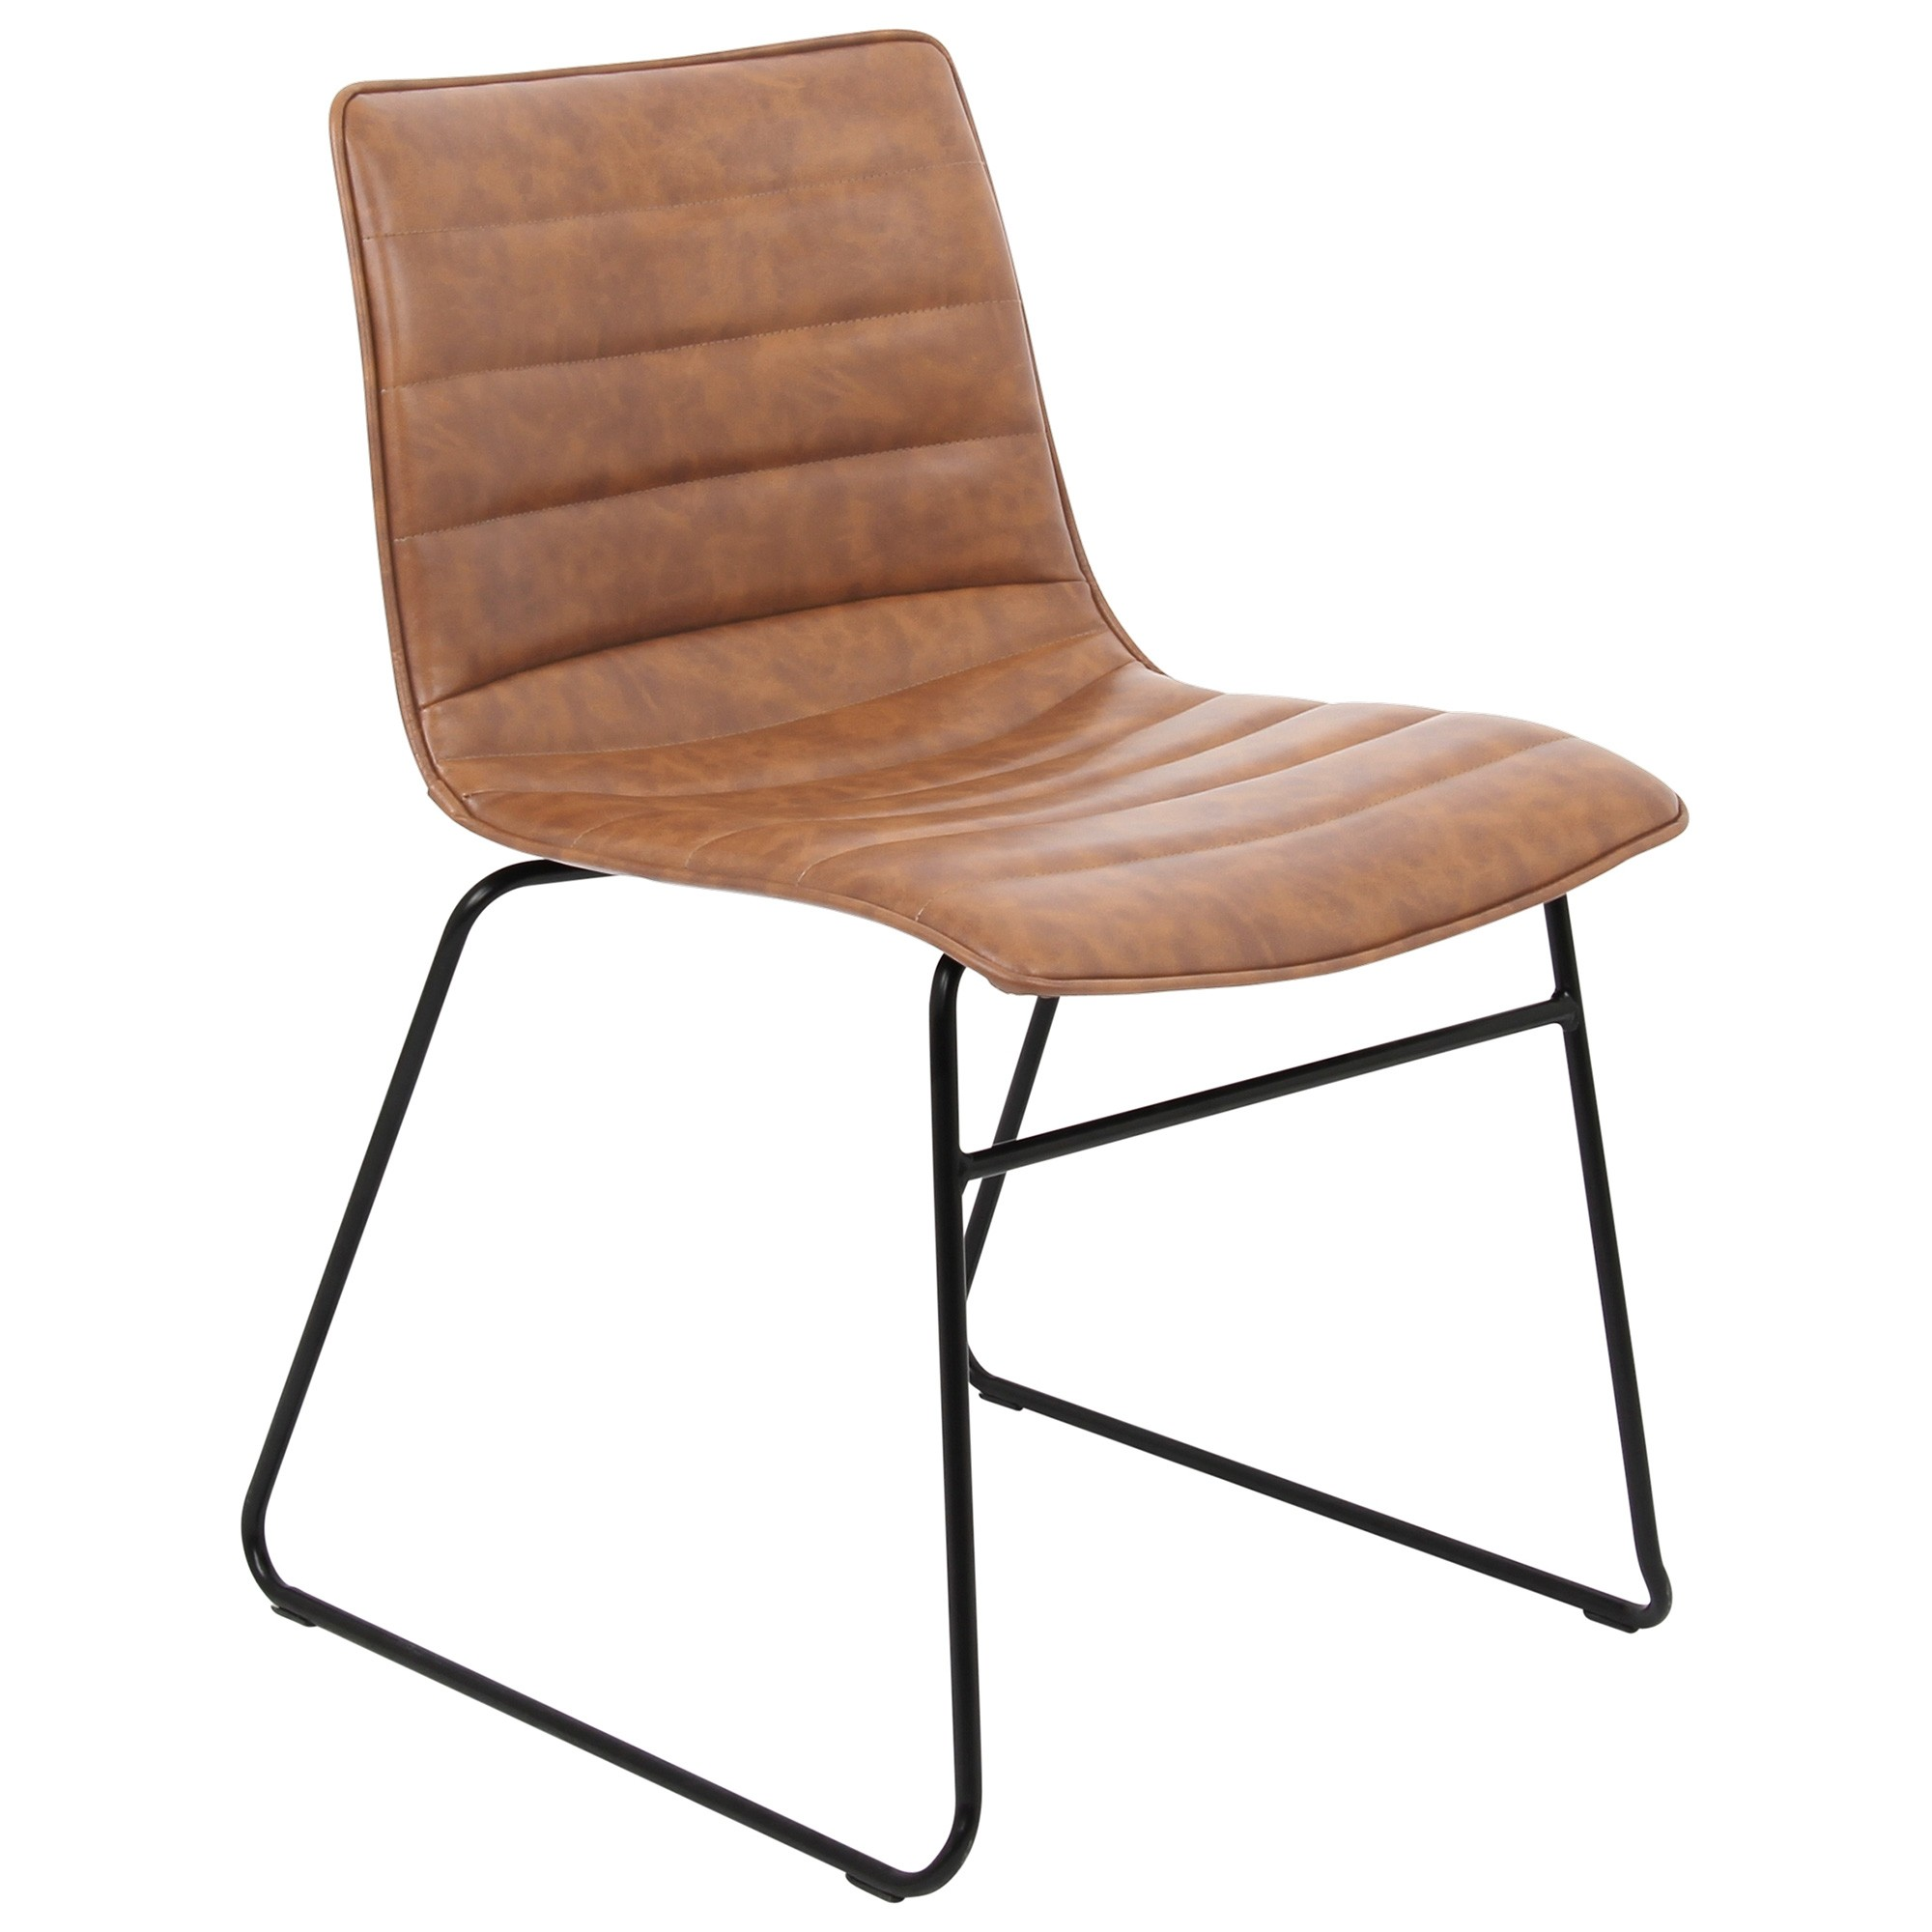 Crosby PU Leather Dining Chair, Rust